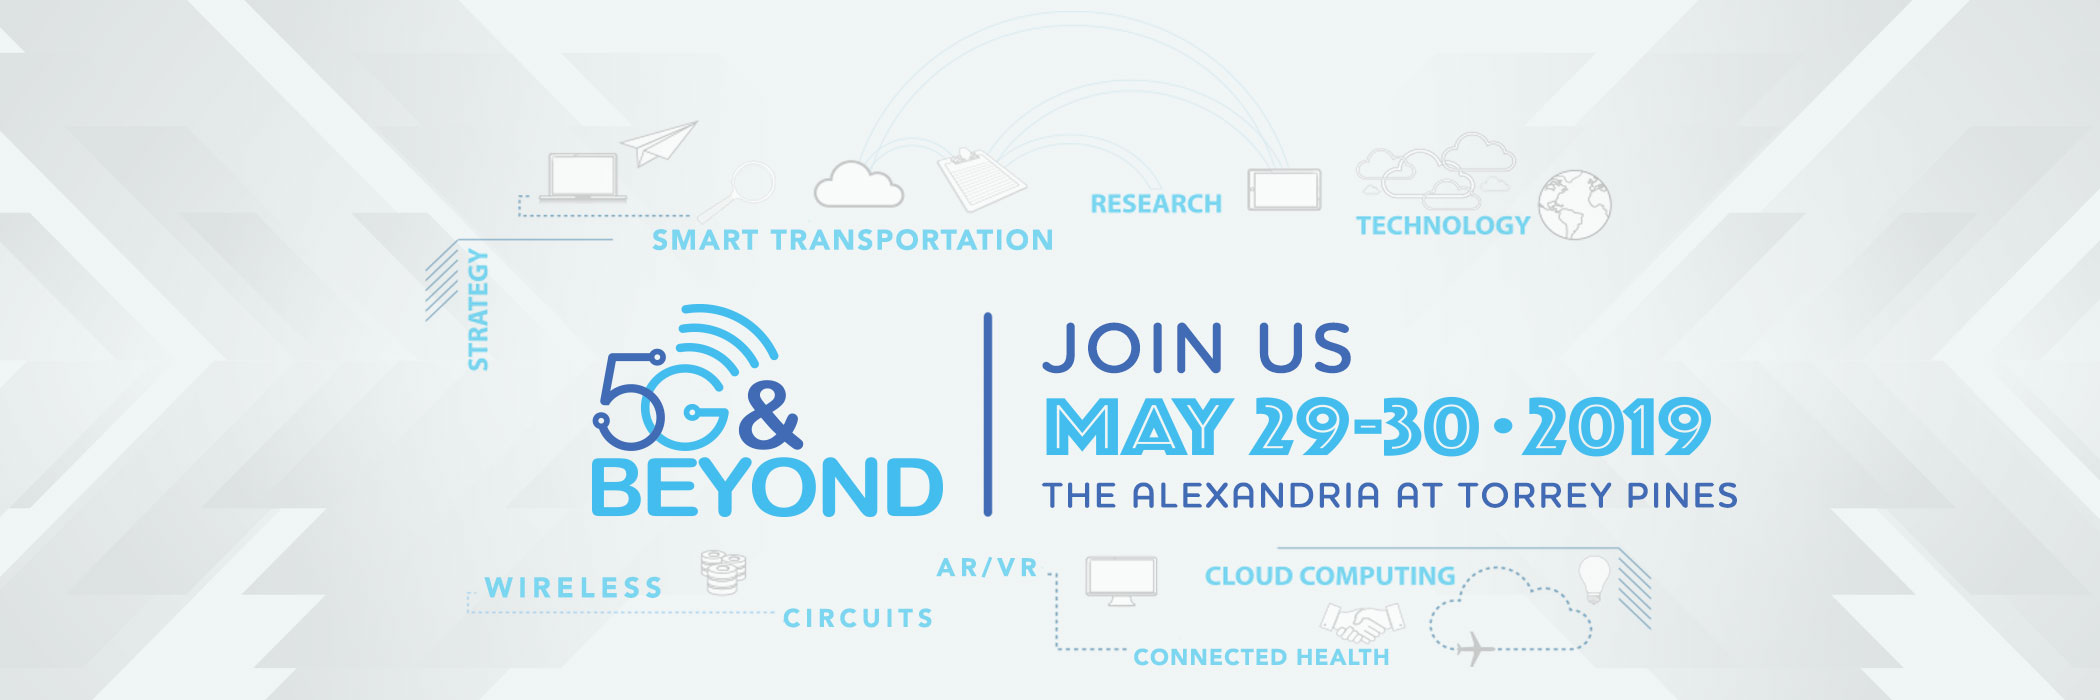 Join us at 5G & Beyond